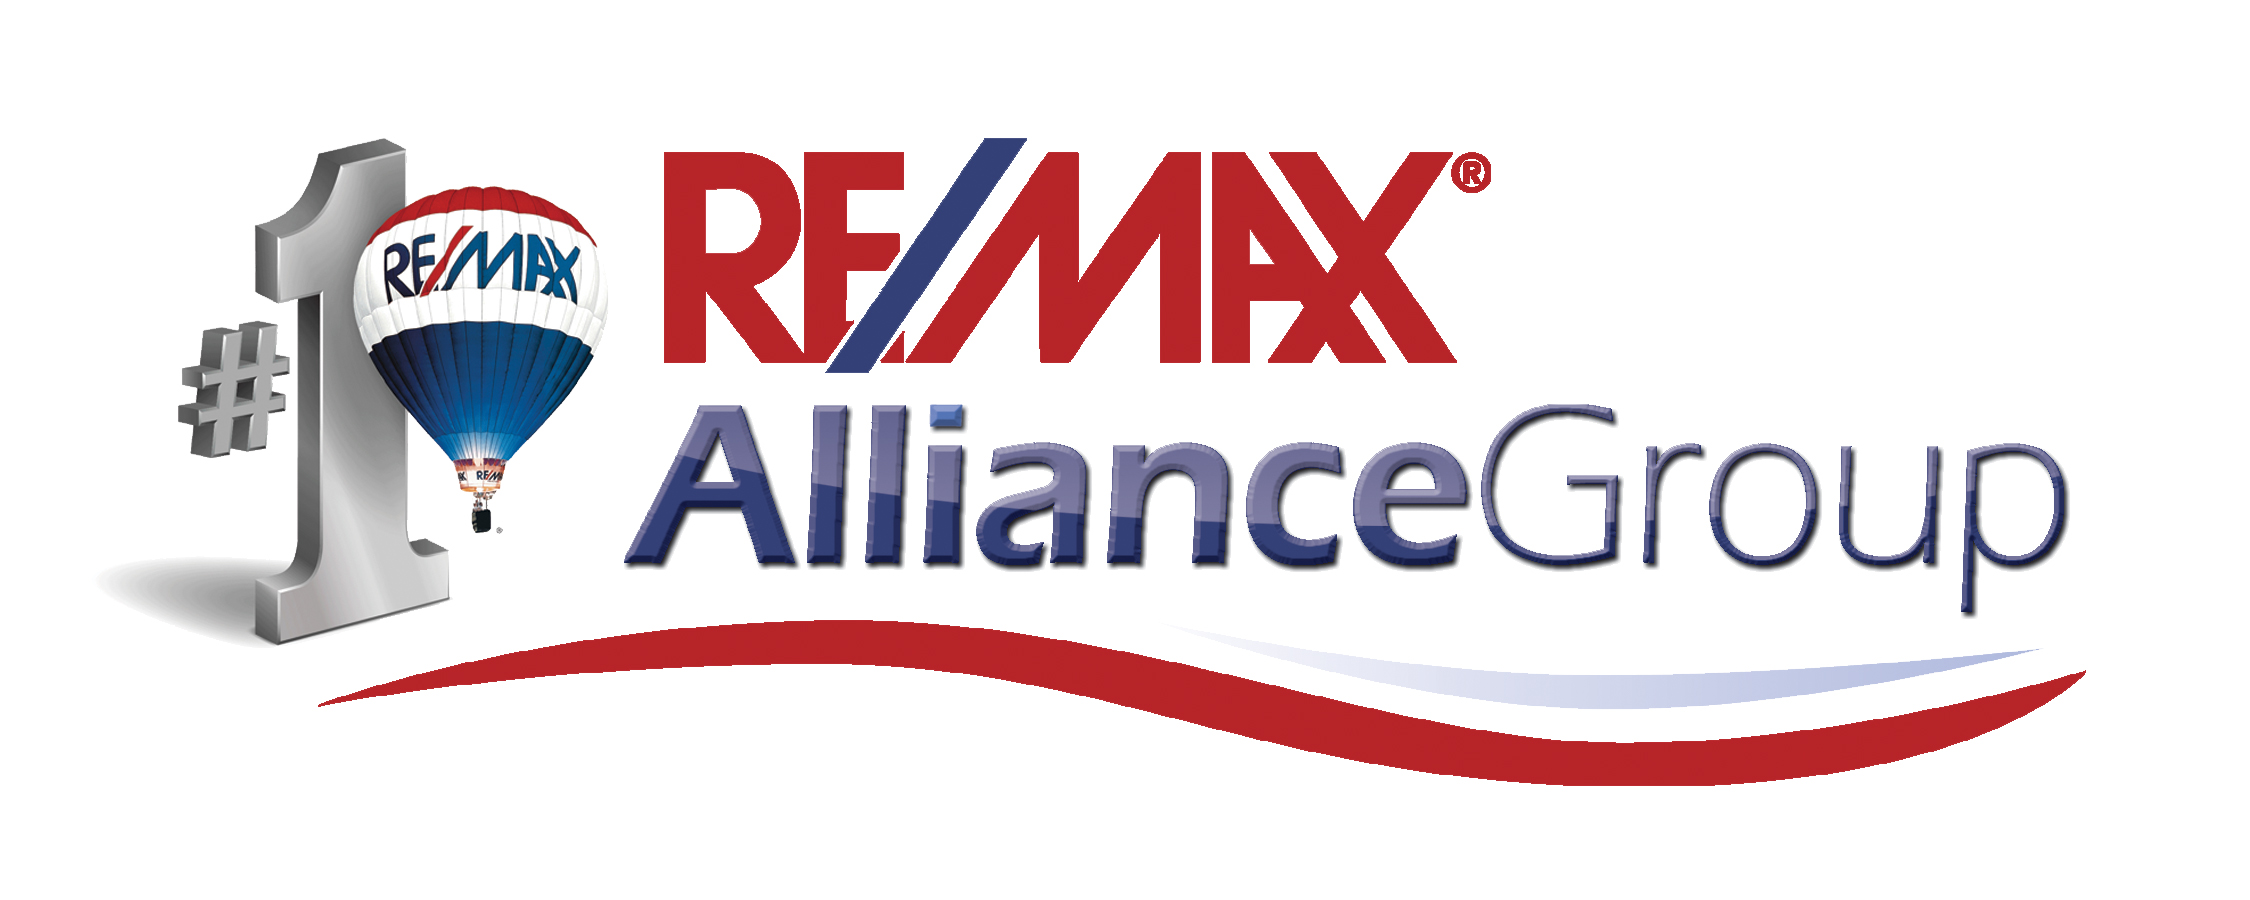 Remax alliance logo